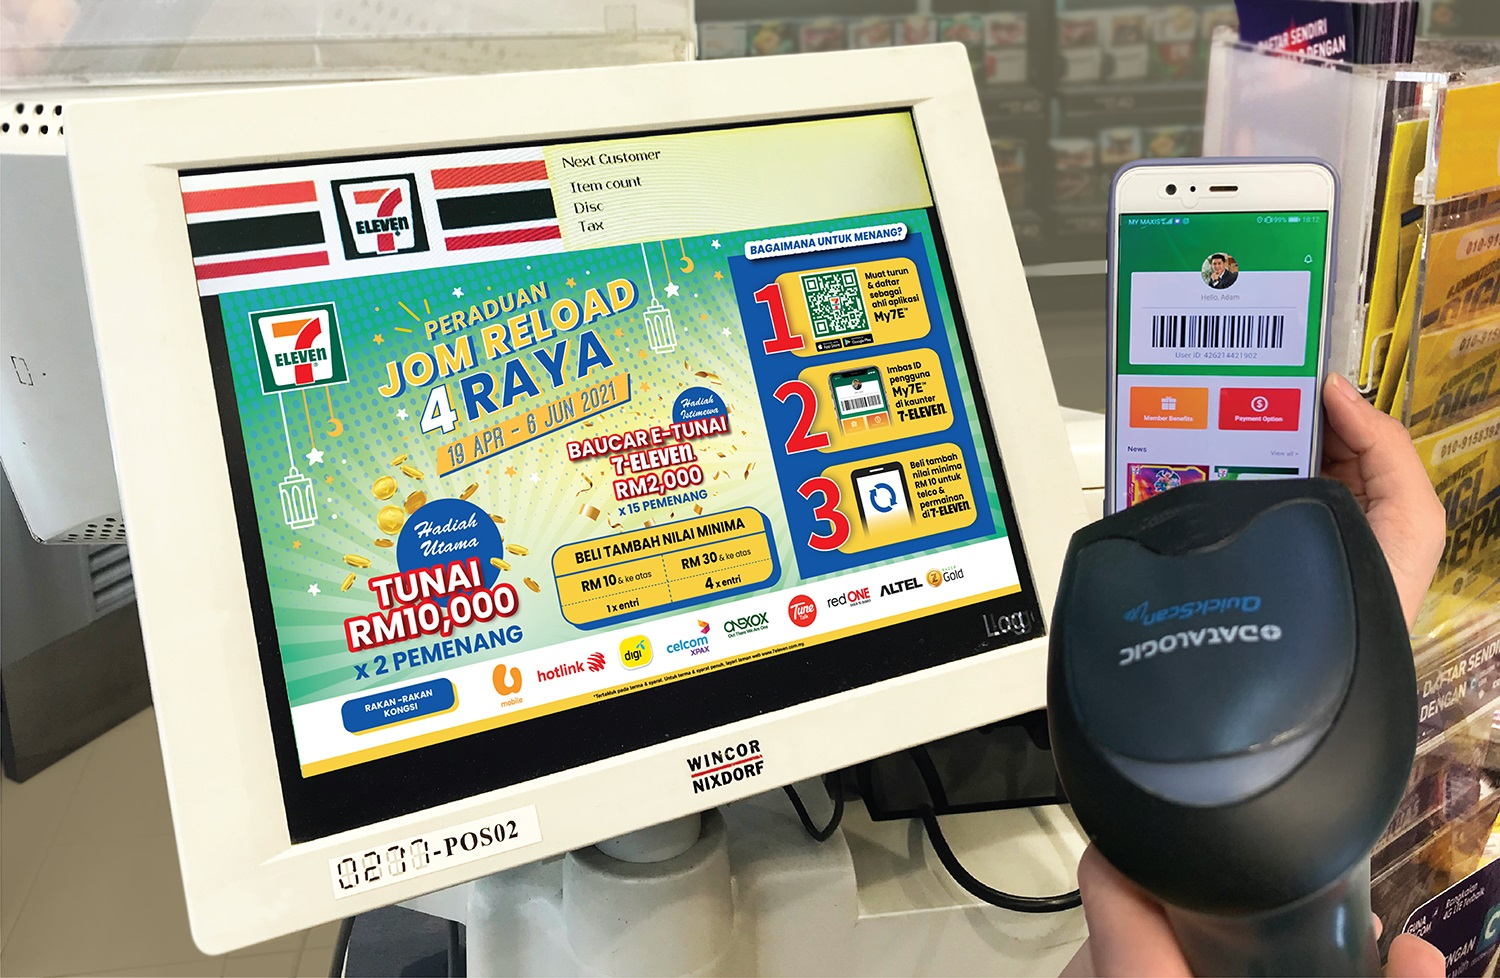 Jom Reload 4 Raya at 7-Eleven With RM50,000 in Prizes Up For Grabs